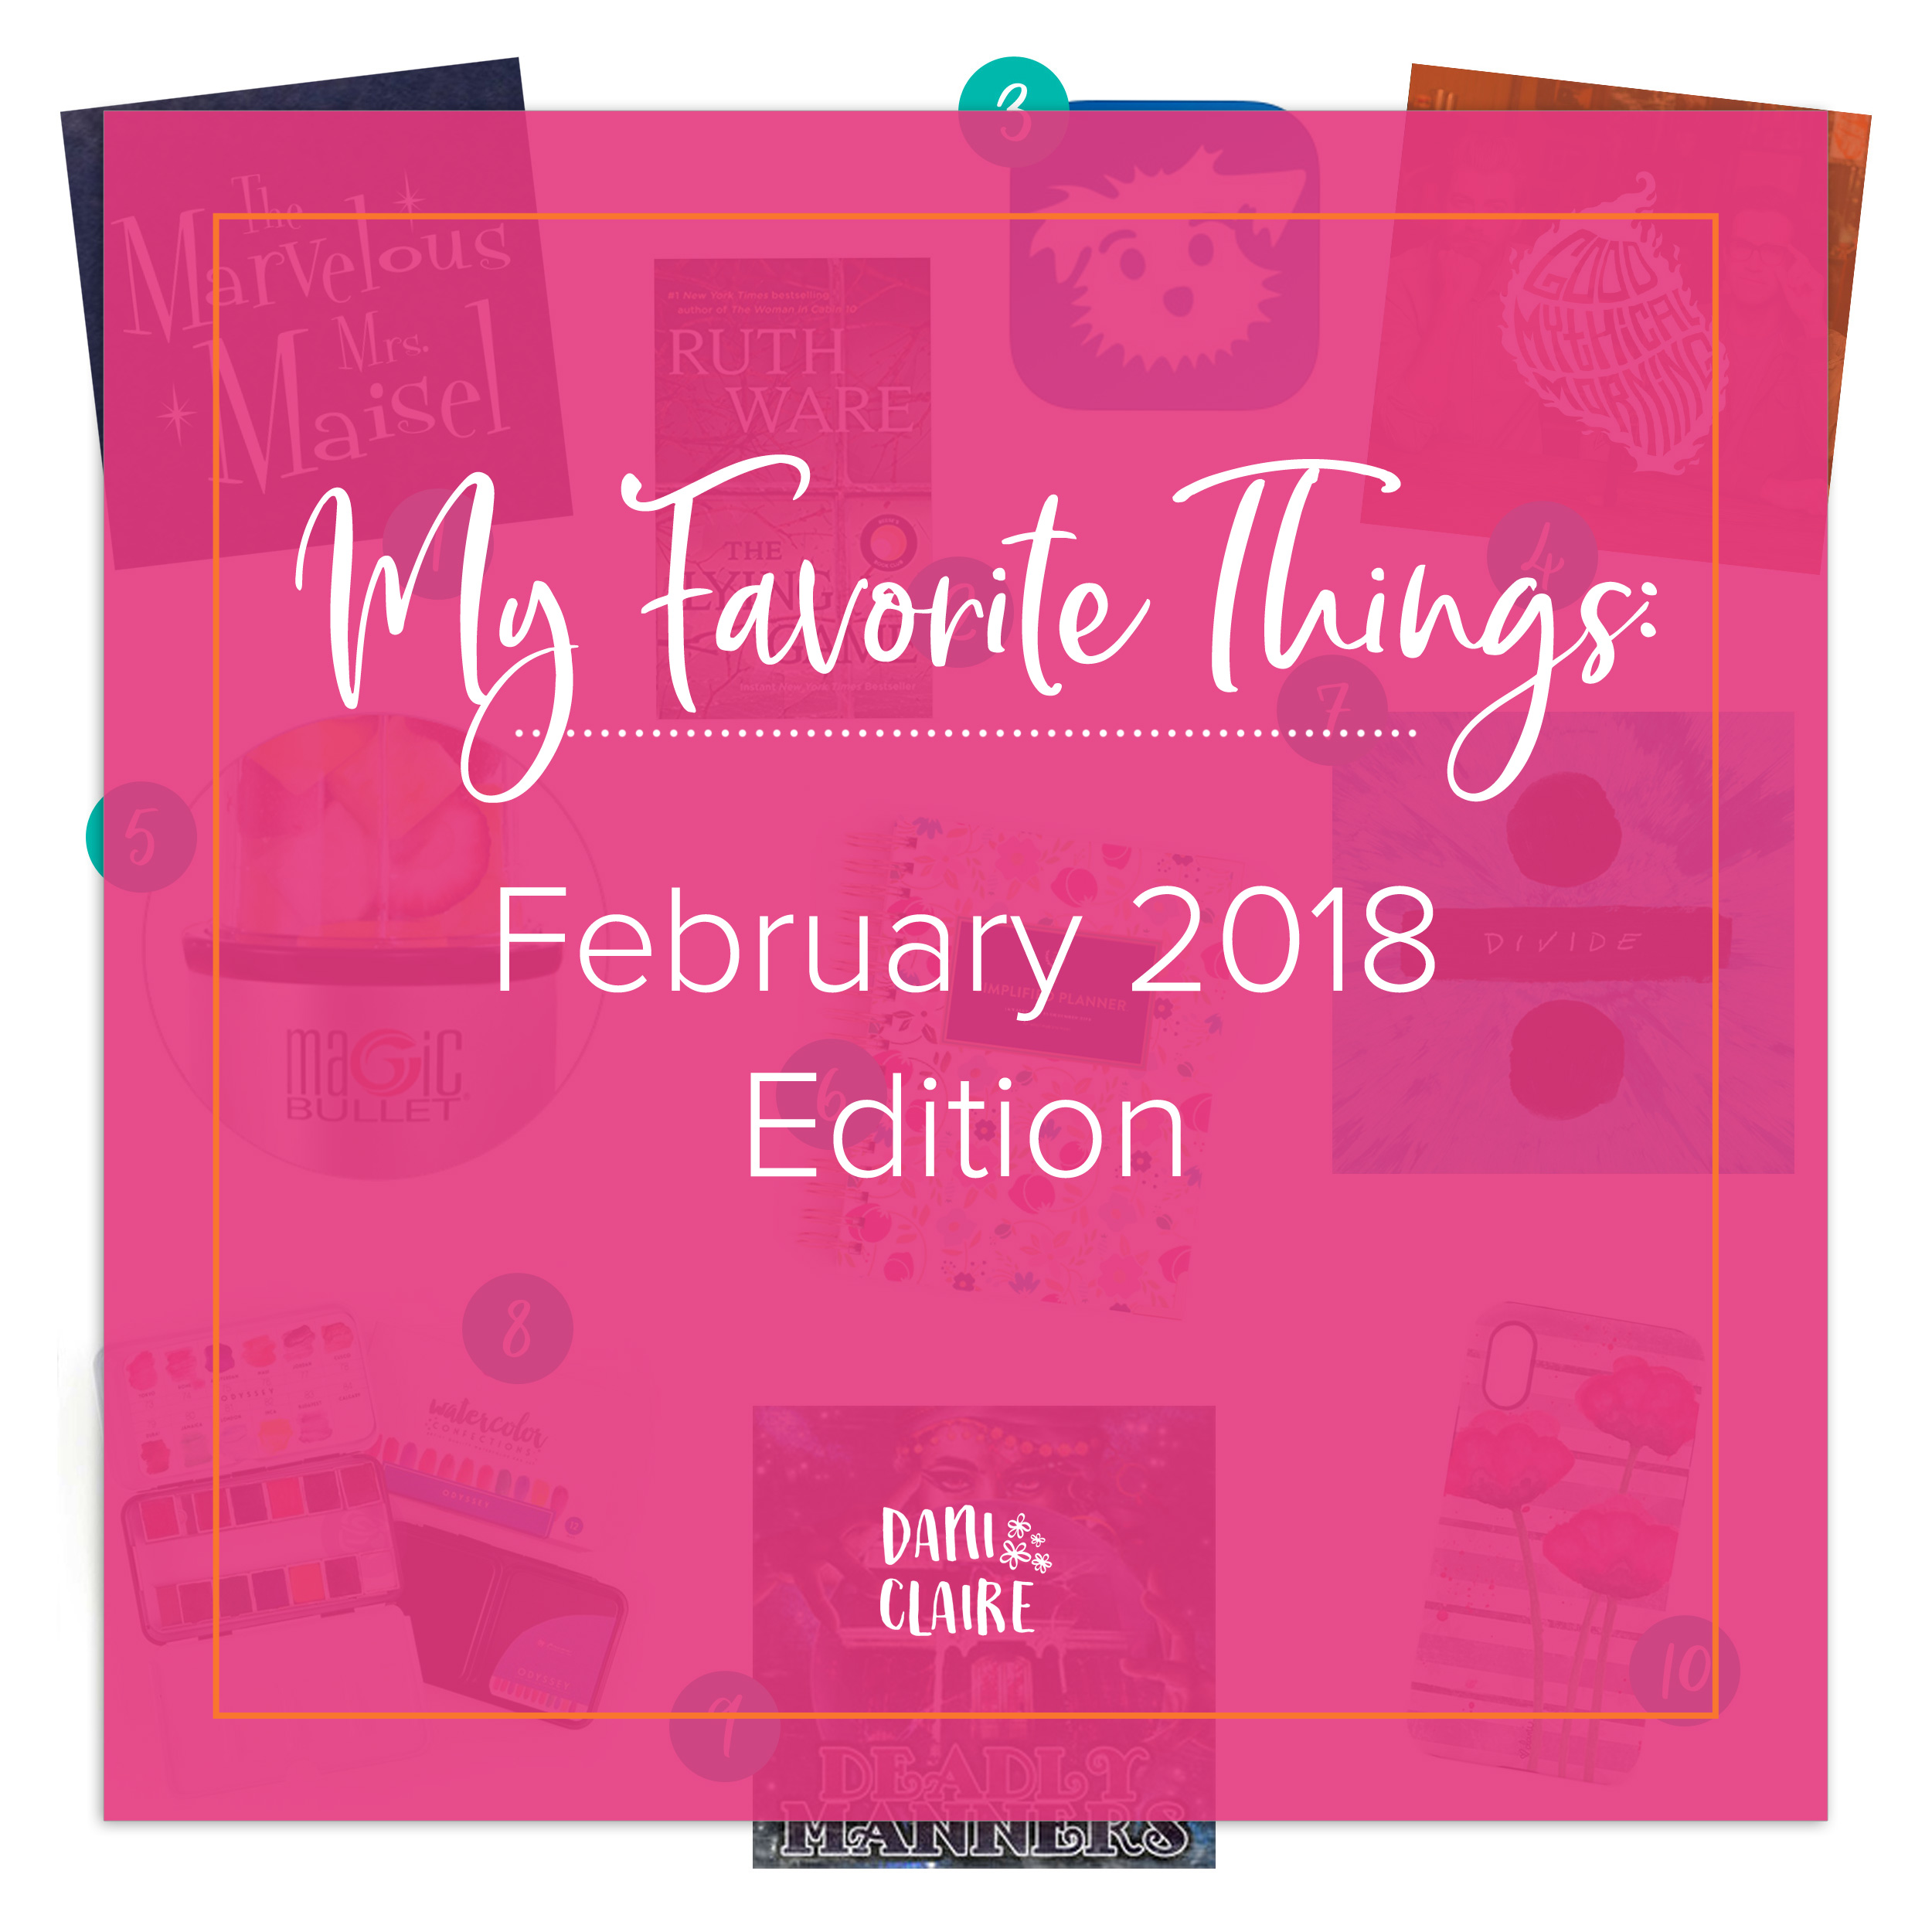 Dani Claire. My Favorite things. favorite Art Supplies, Prima Watercolor Confections,Favorite show. The marvelous mrs. maisel. Favorite App. Down Dog App. Favorite Youtube channel. Good mythical morning. magic bullet. simplified planner. planner girl. Favorite planner. Watercolor artist. Watercolor poppy. iphone case. poppy iphone case. watercolor art.